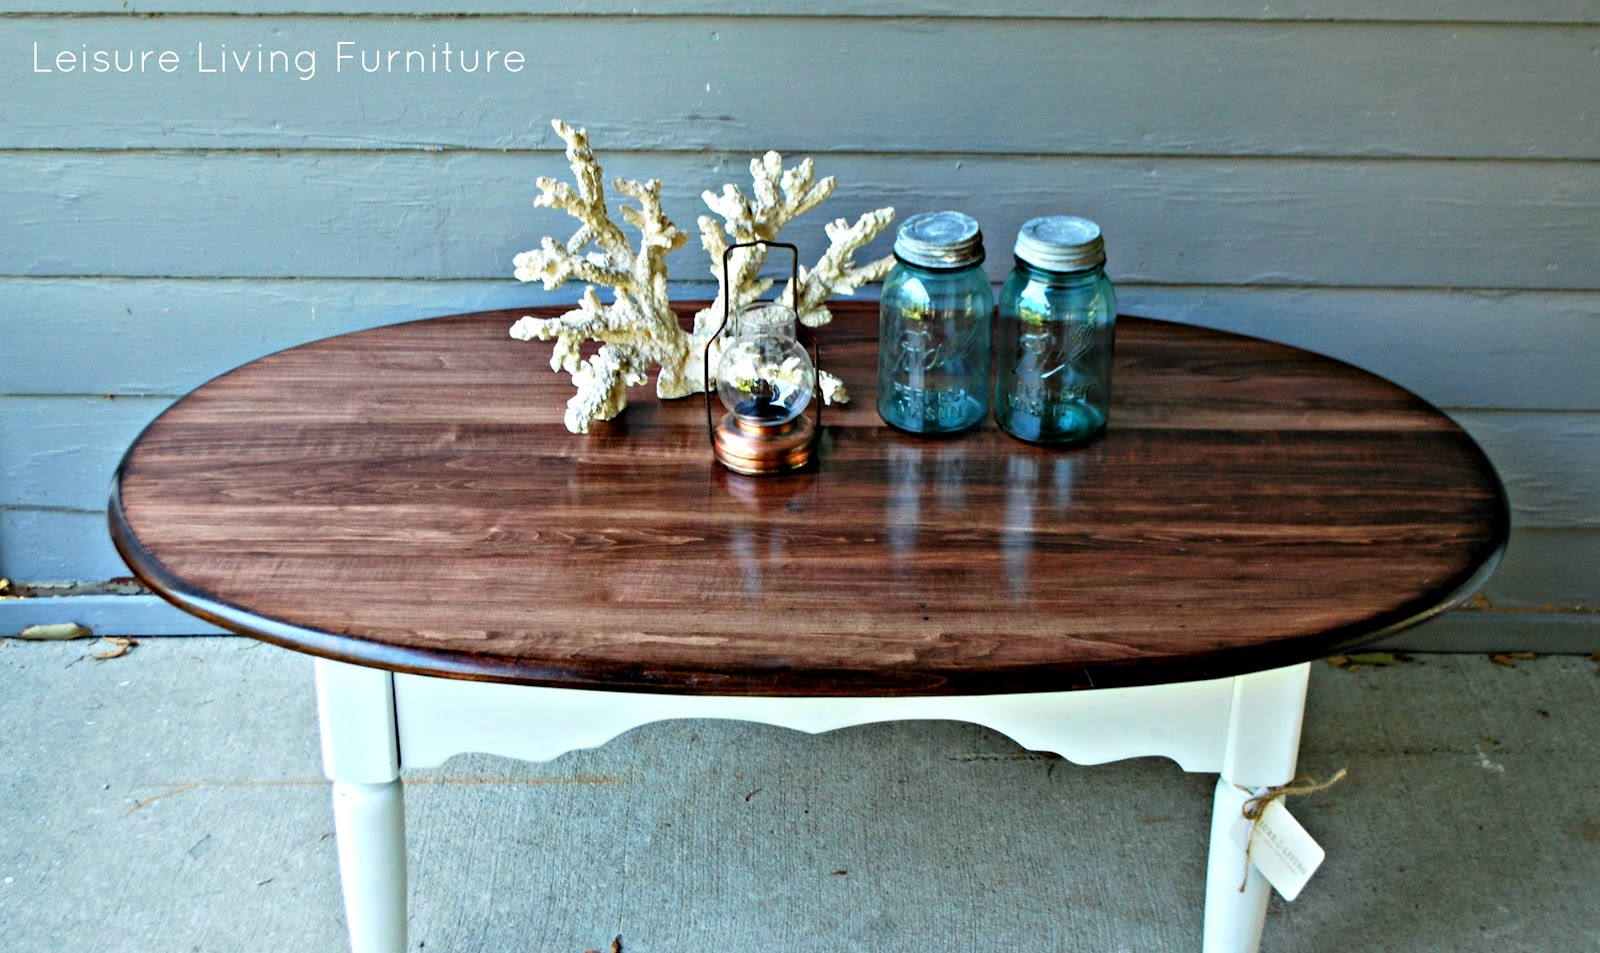 Top leisure living: Two Toned Coffee Table EZ54